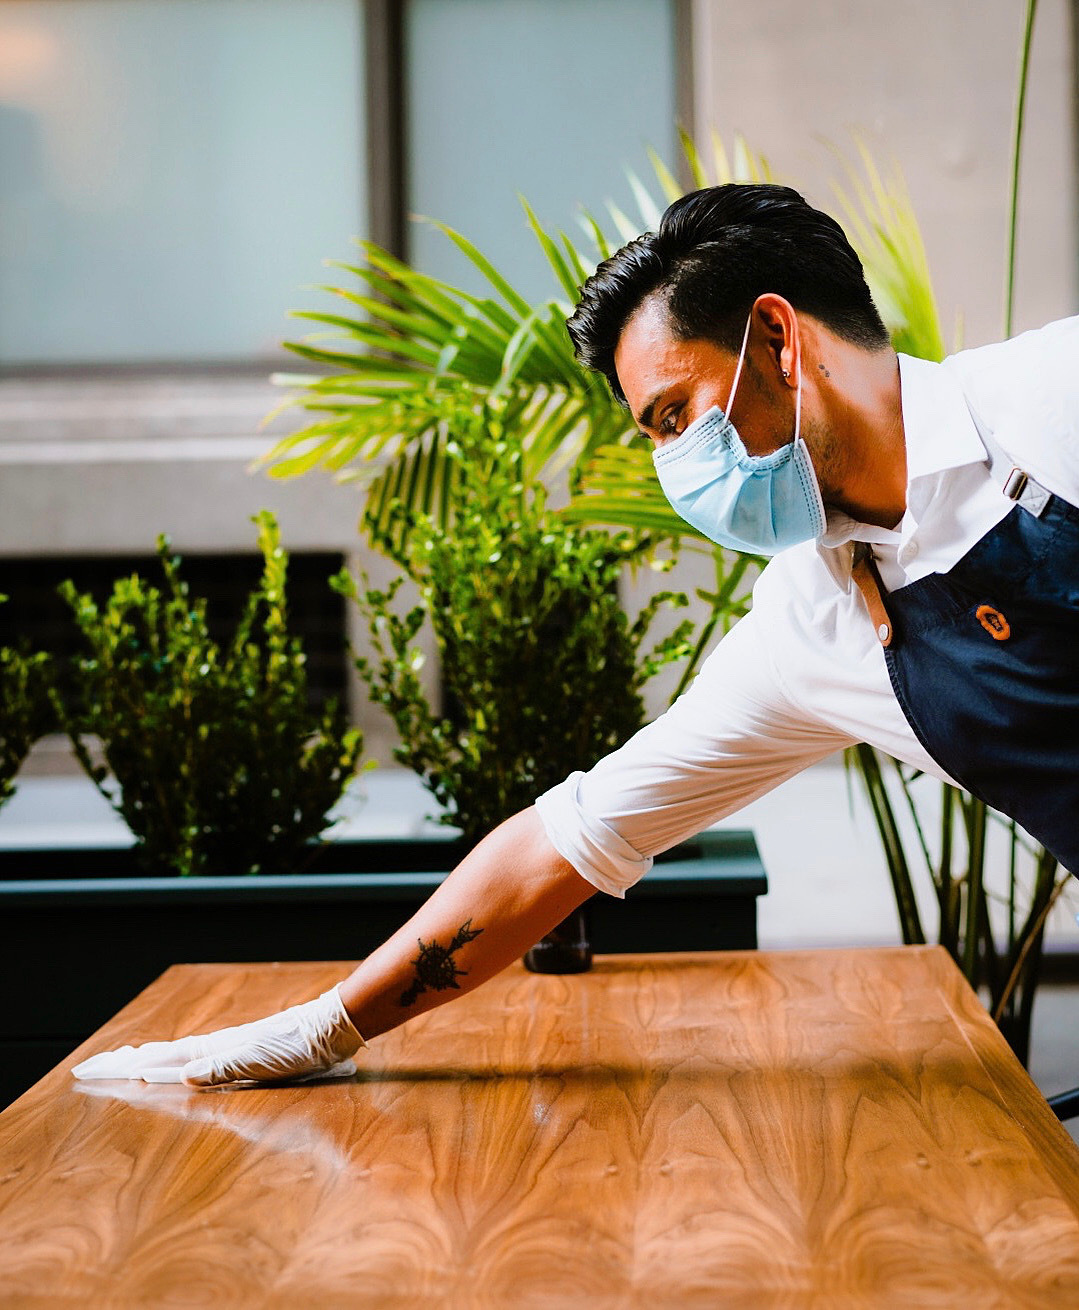 A man wearing a mask cleaning a wooden table